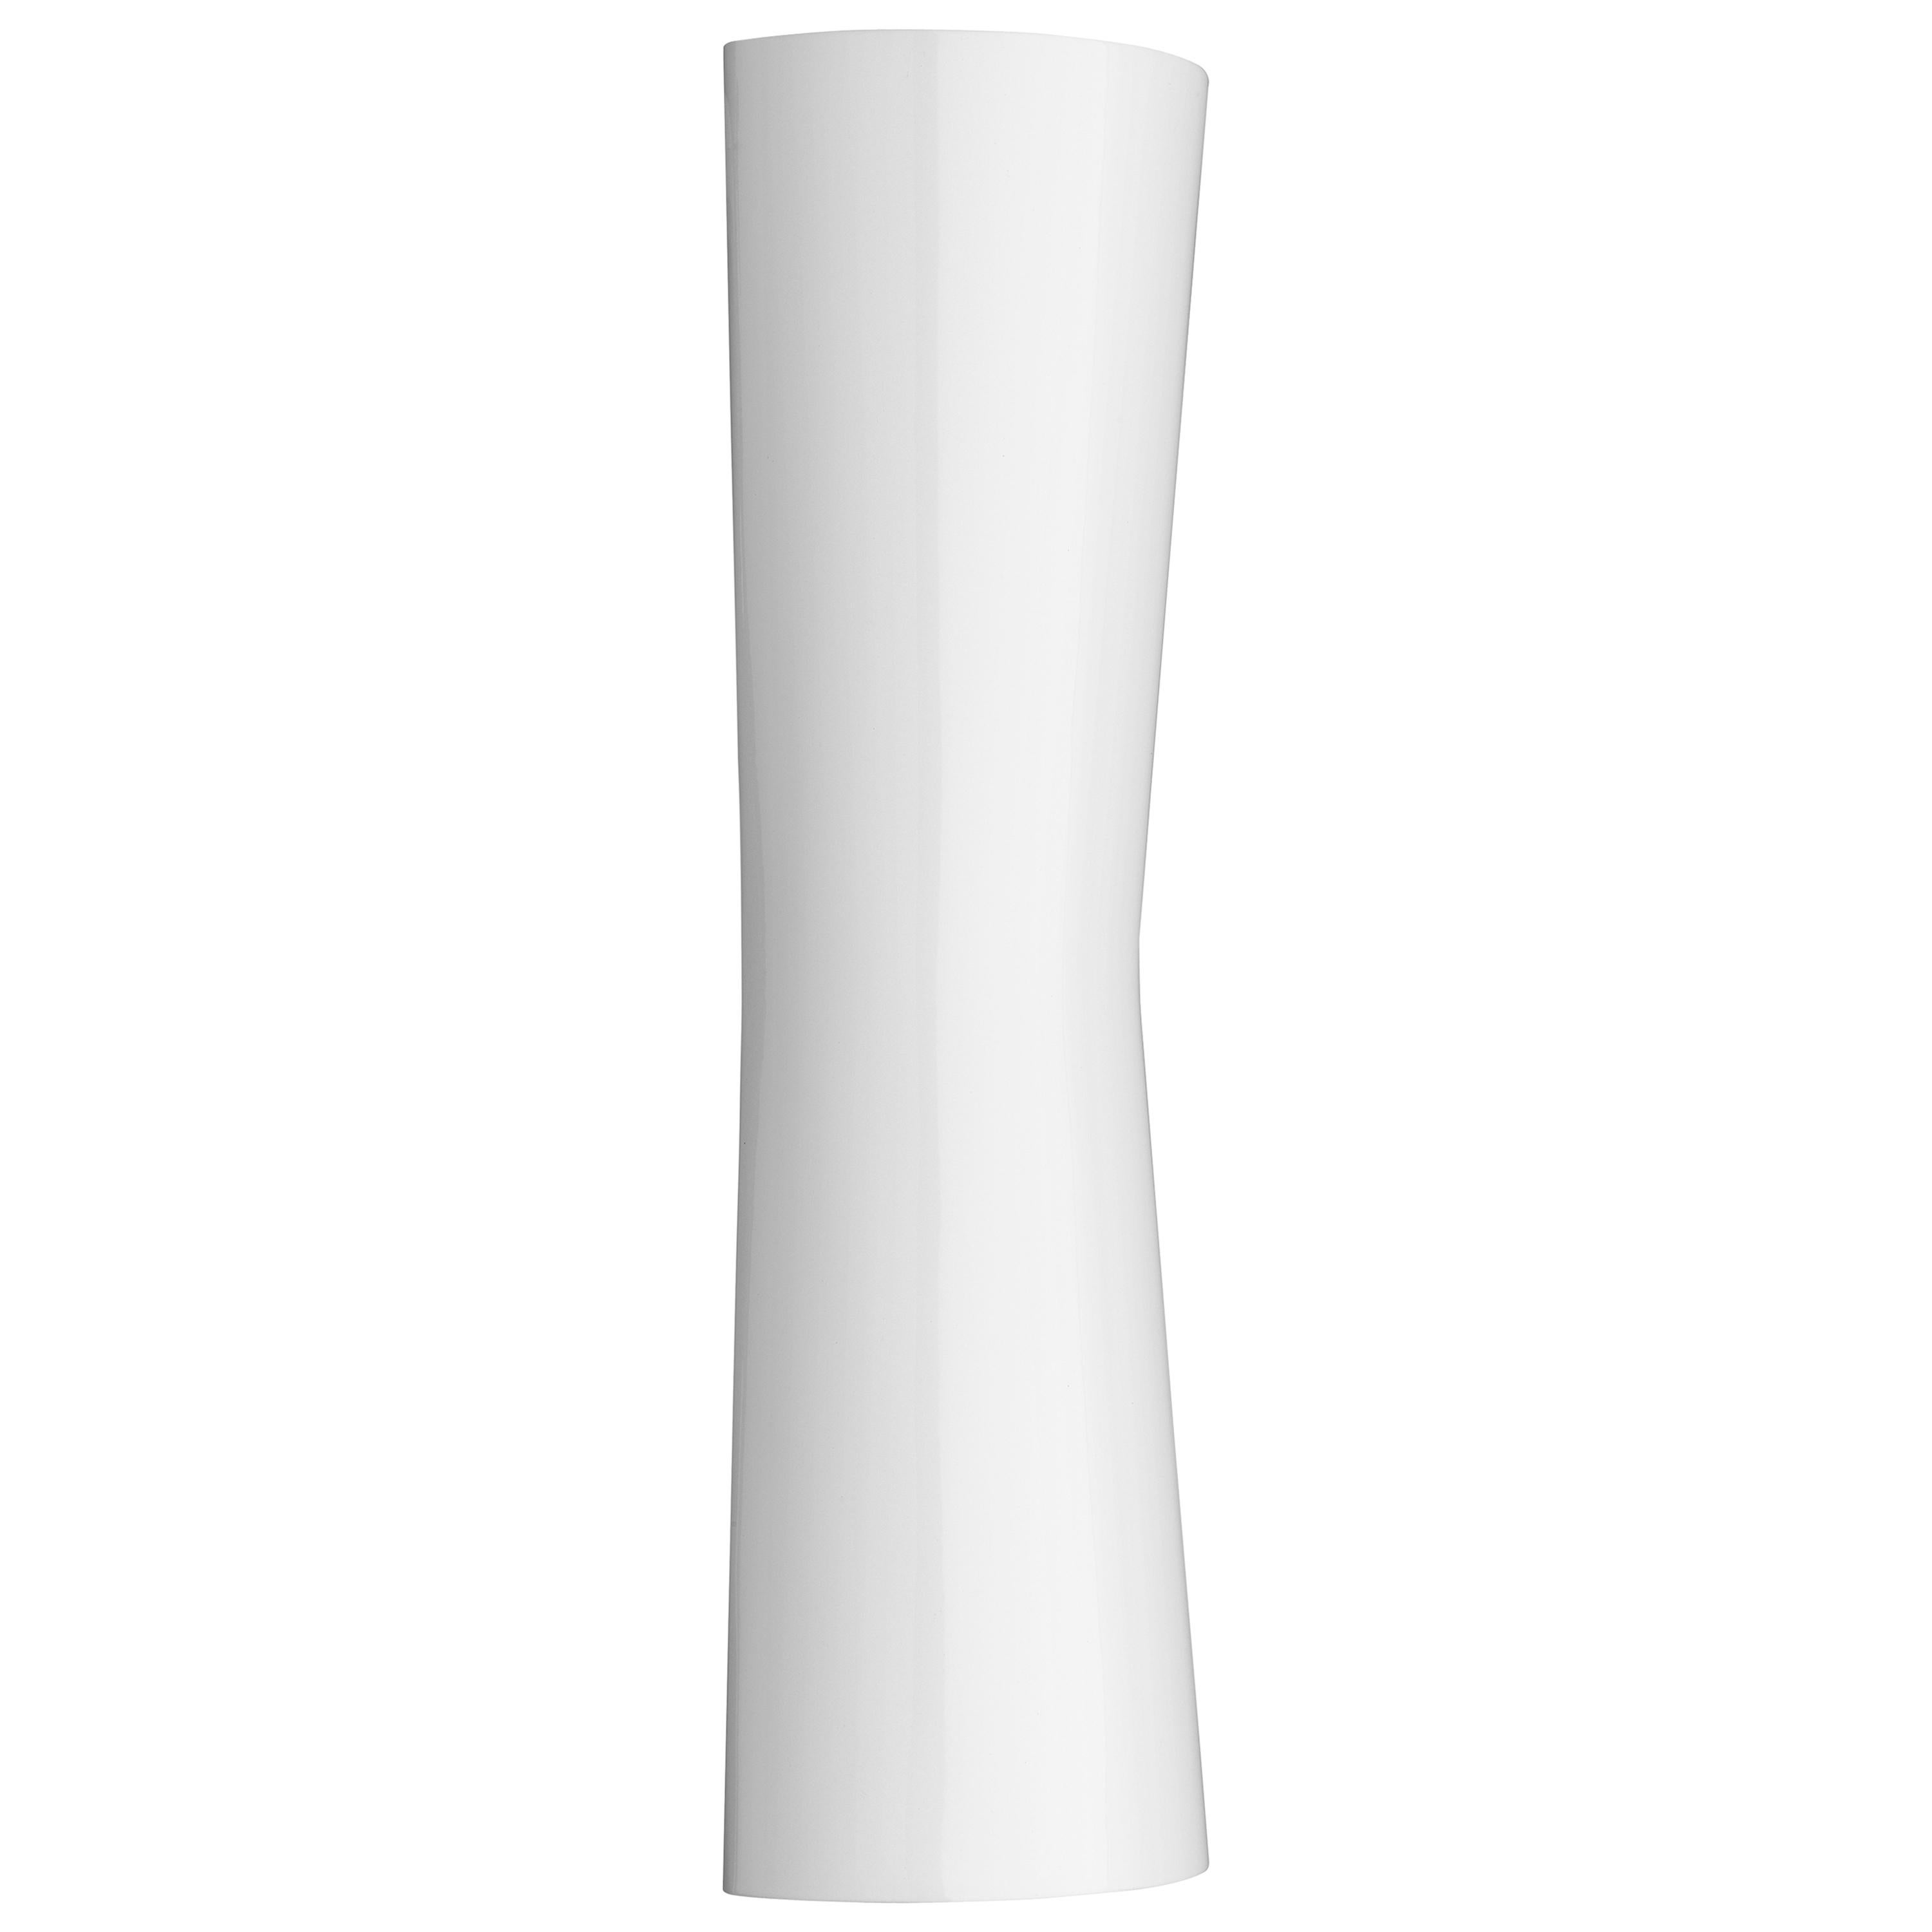 FLOS Clessidra 20° + 20° Indoor Wall Lamp in Glossy White by Antonio Citterio